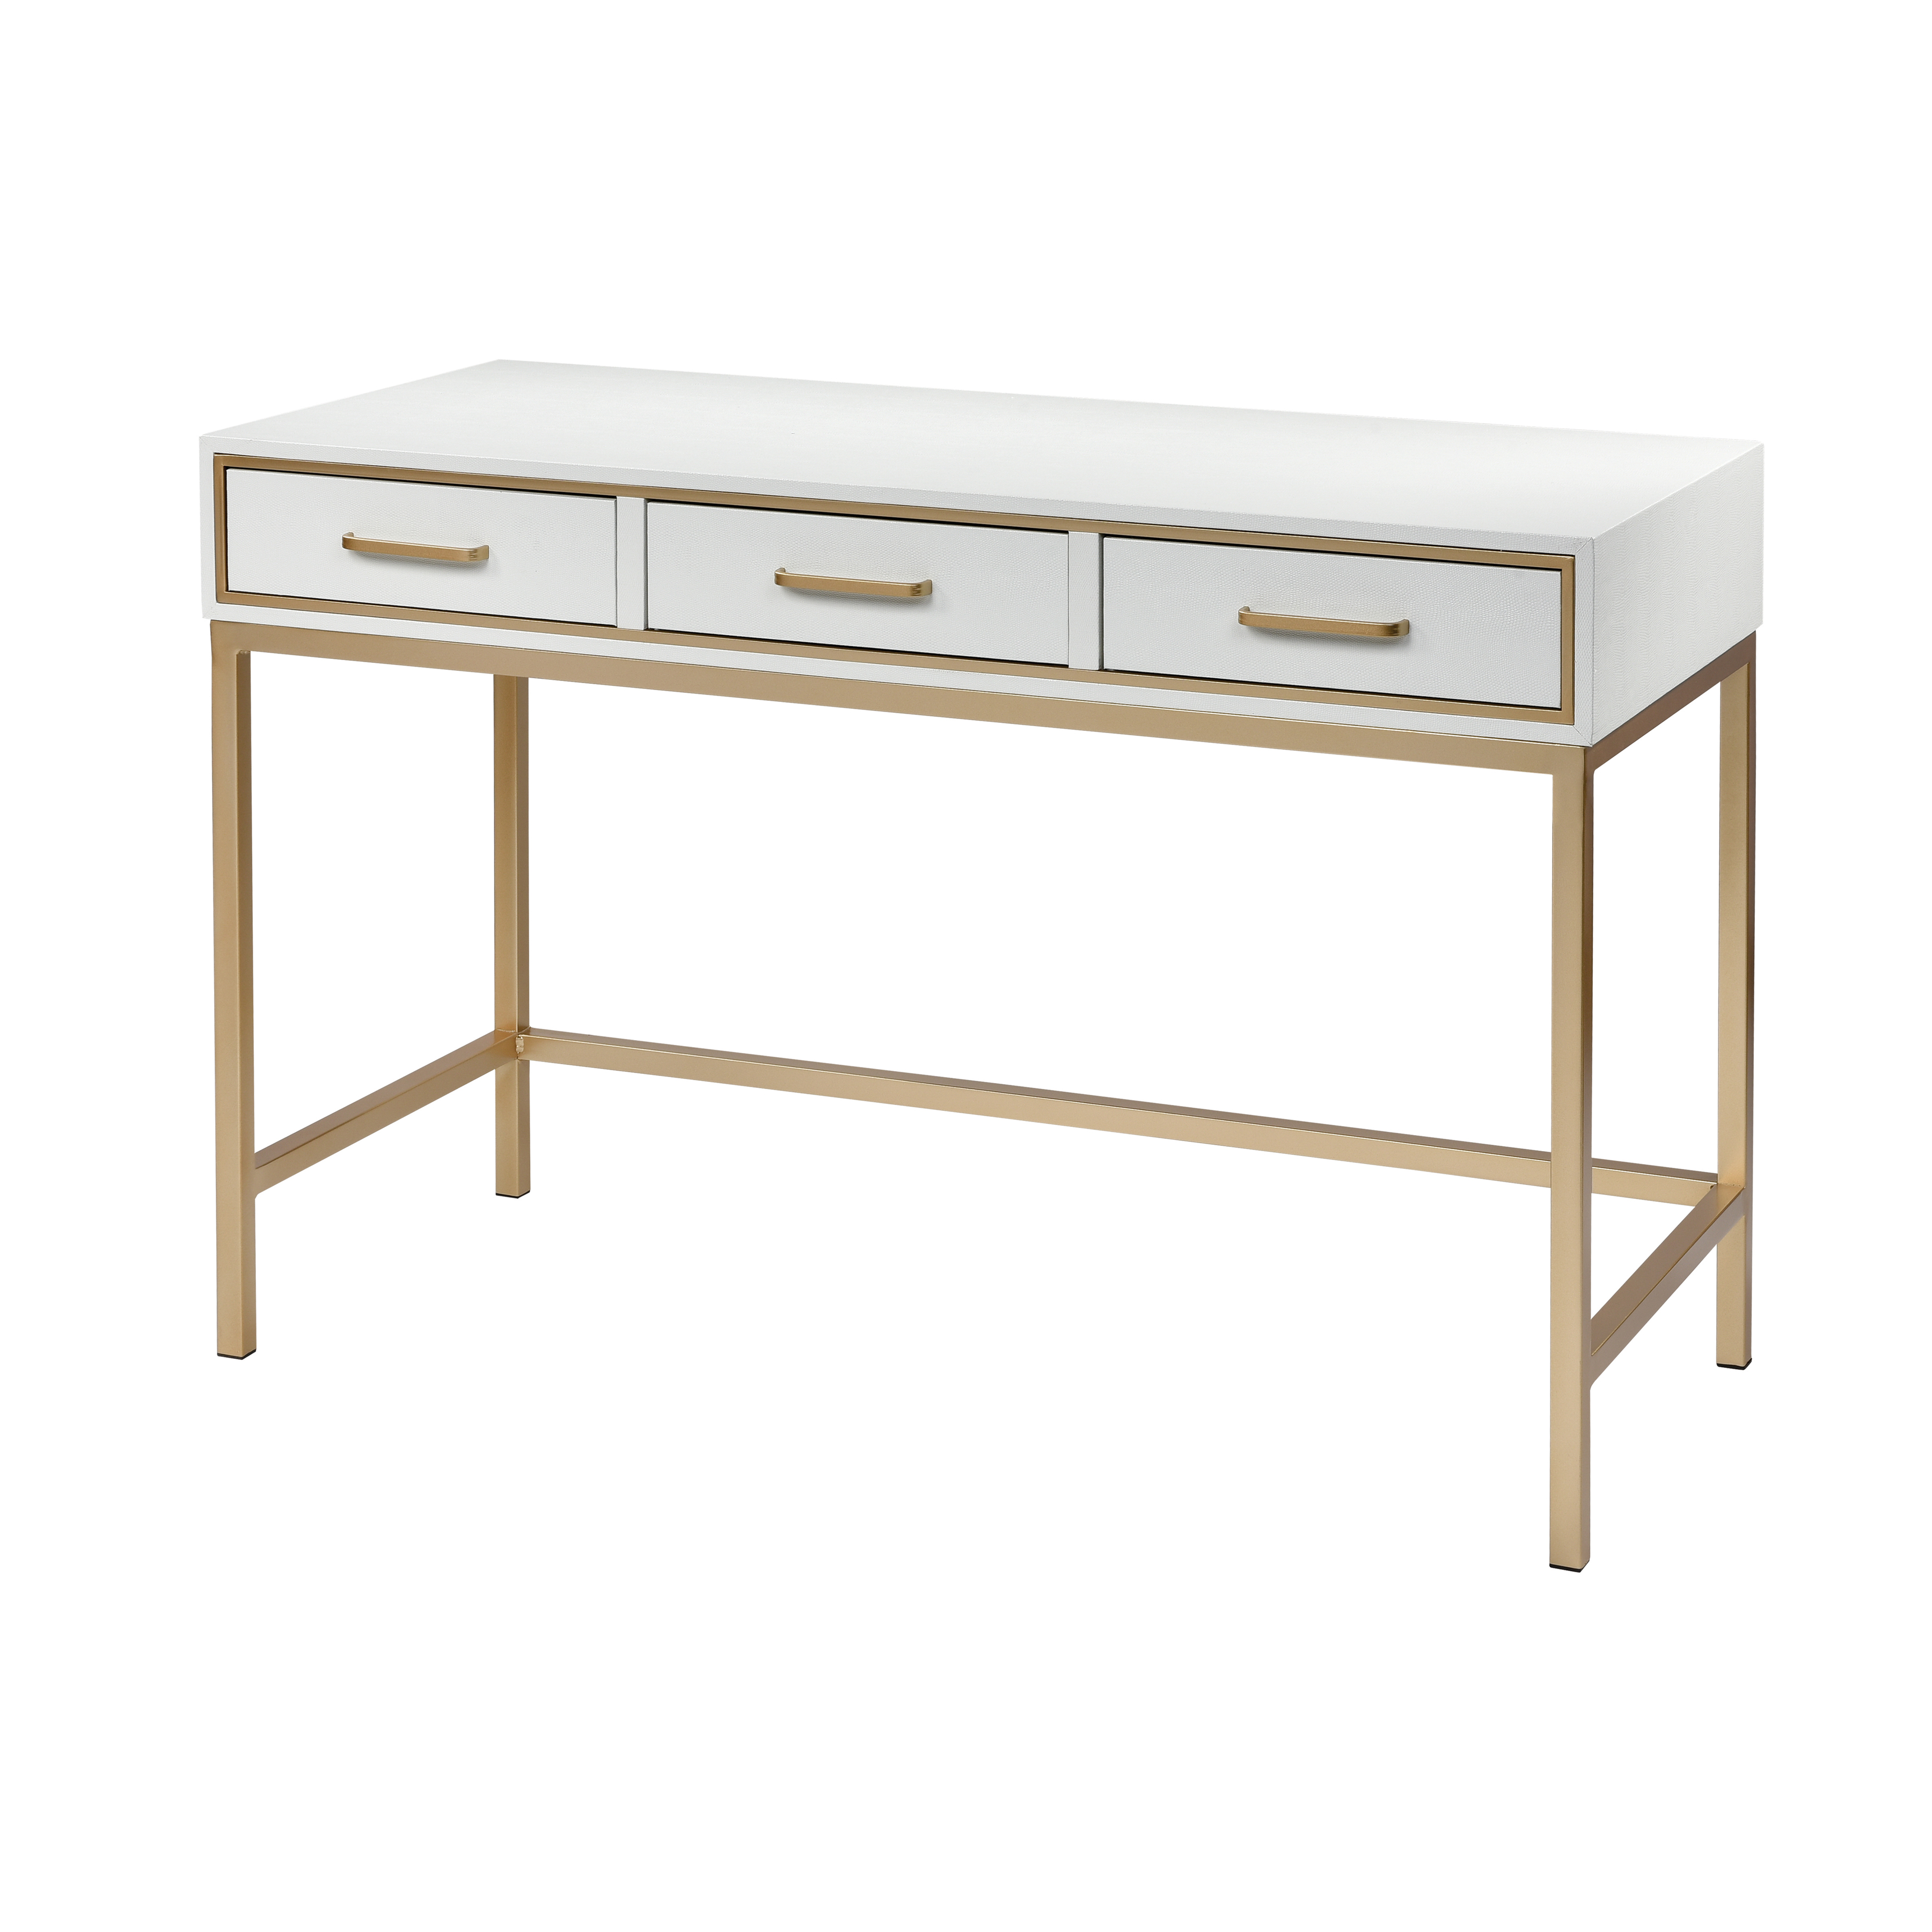 Sands Point 3-Drawer Desk in Off-White And Gold 3169-101 | ELK Home